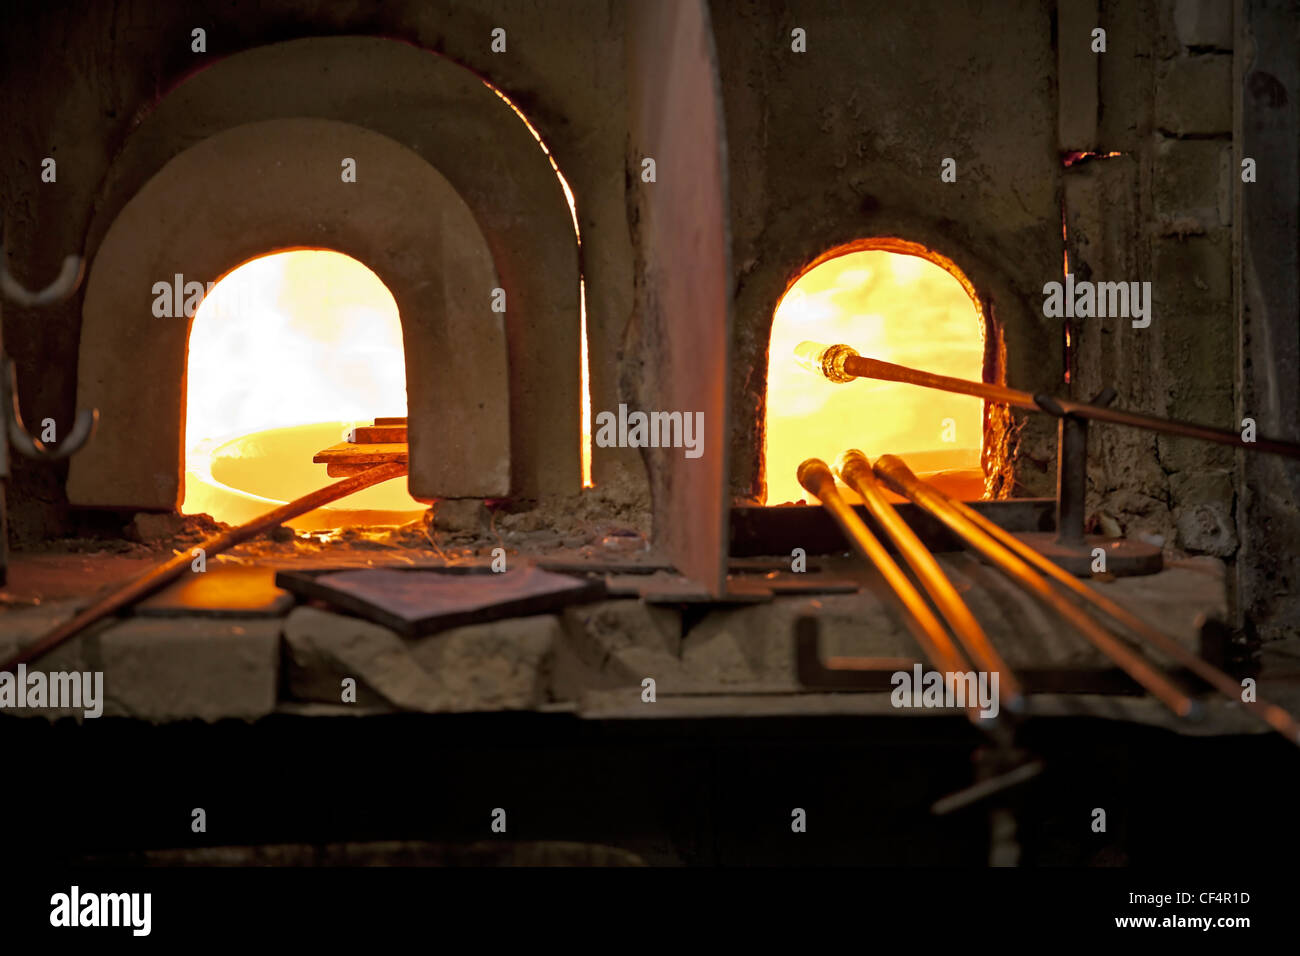 Furnace of a glass blower on Murano, Veneto, Italy - Stock Image